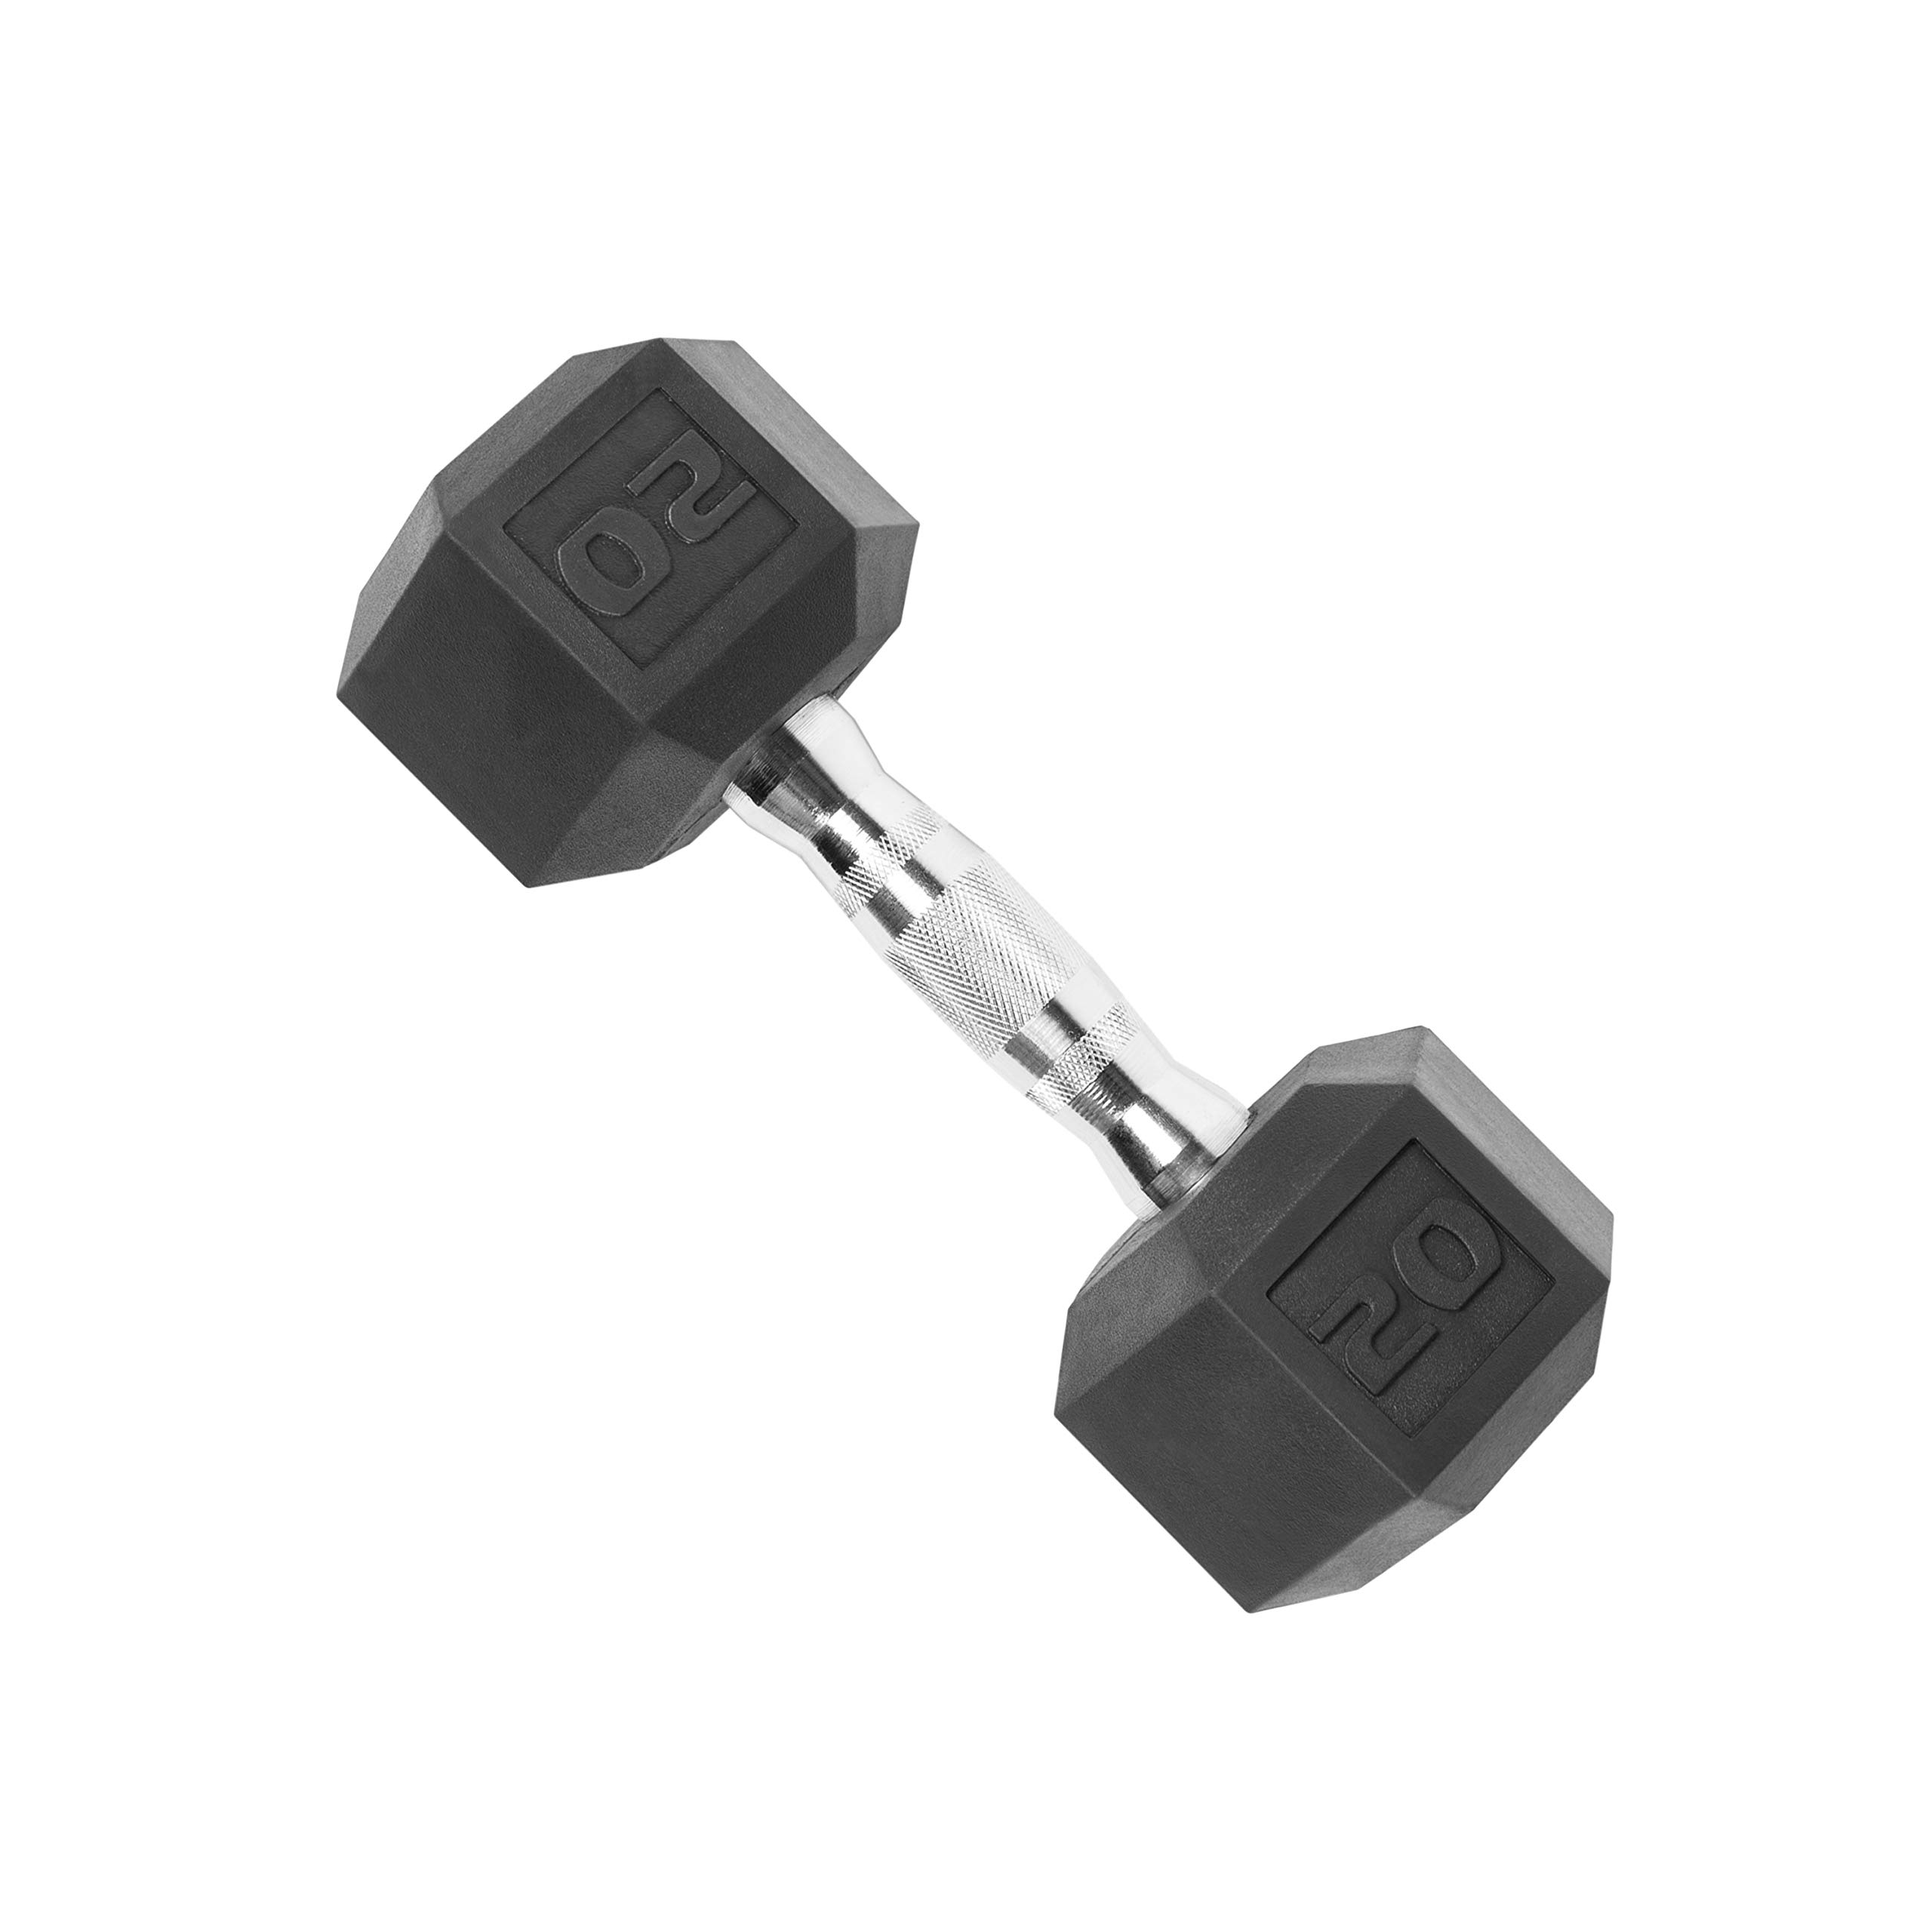 CAP Barbell SDR-020 Rubber Coated Hex Dumbbell with Contoured Chrome Handle (20-Pound), Black